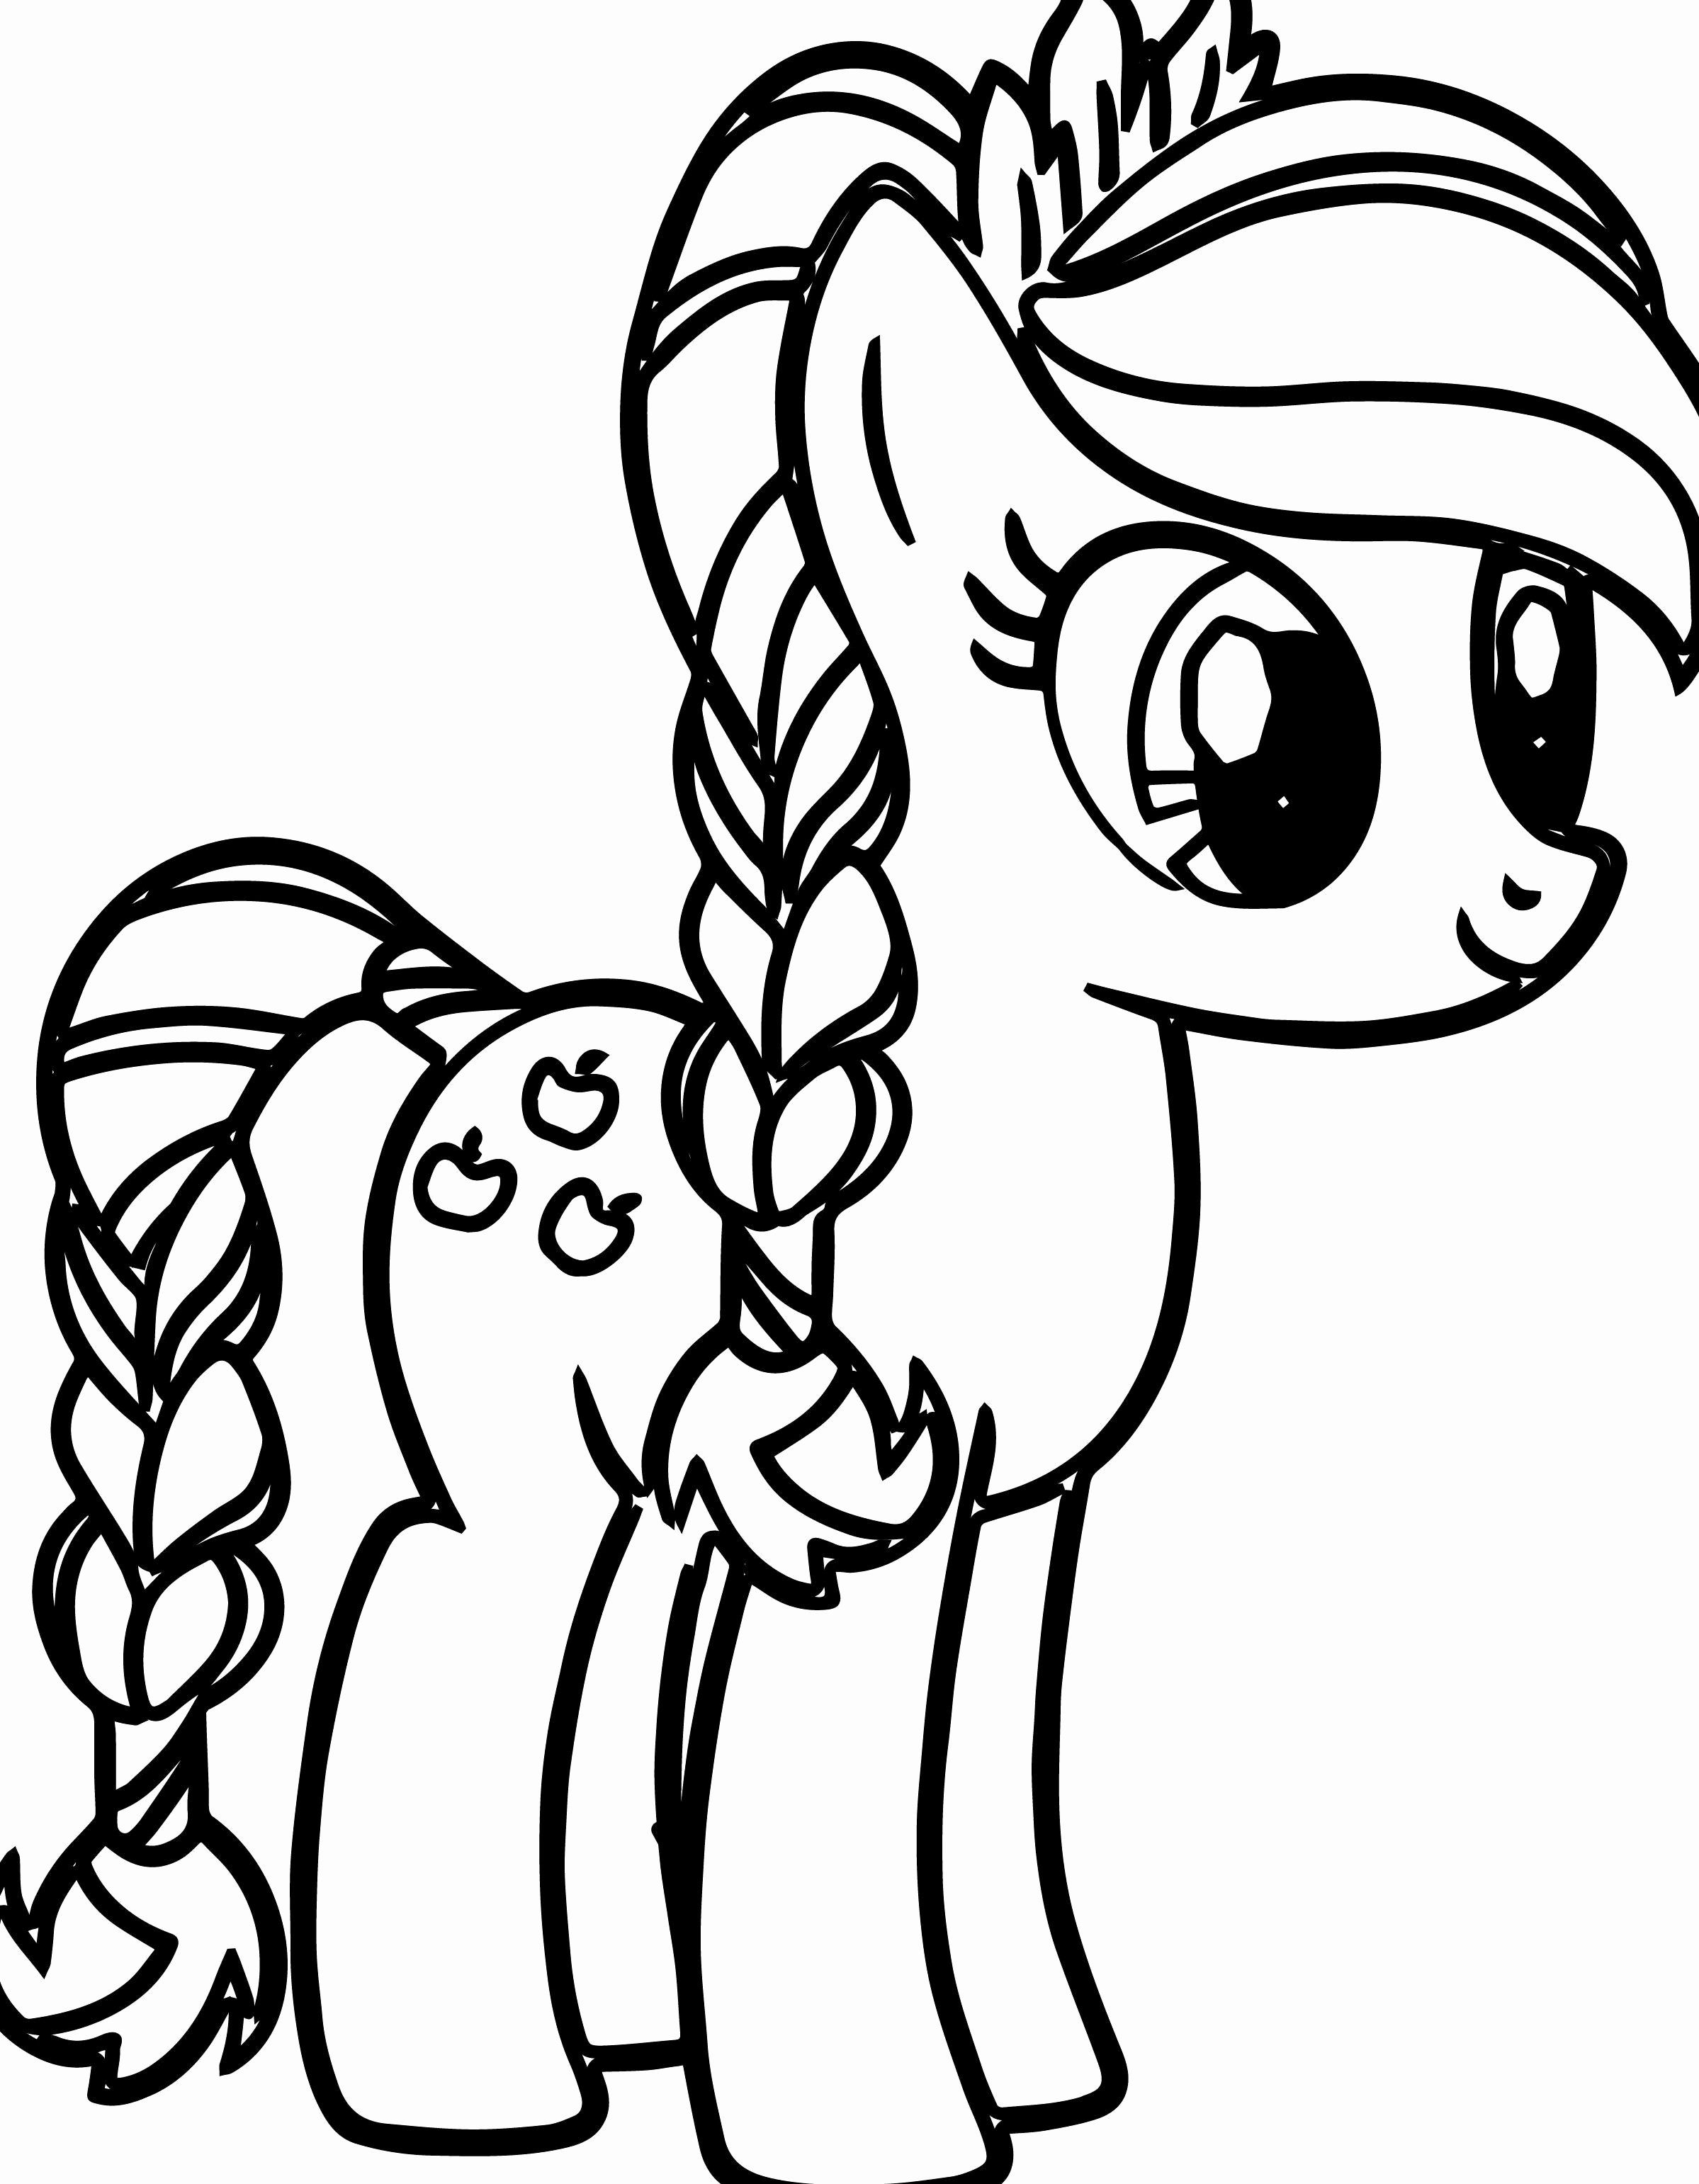 Mermaid Tail Coloring Page New Pin By Amit Thakur On My Little Pony Coloring Pages Unicorn Coloring Pages My Little Pony Printable Horse Coloring Pages [ 3083 x 2398 Pixel ]